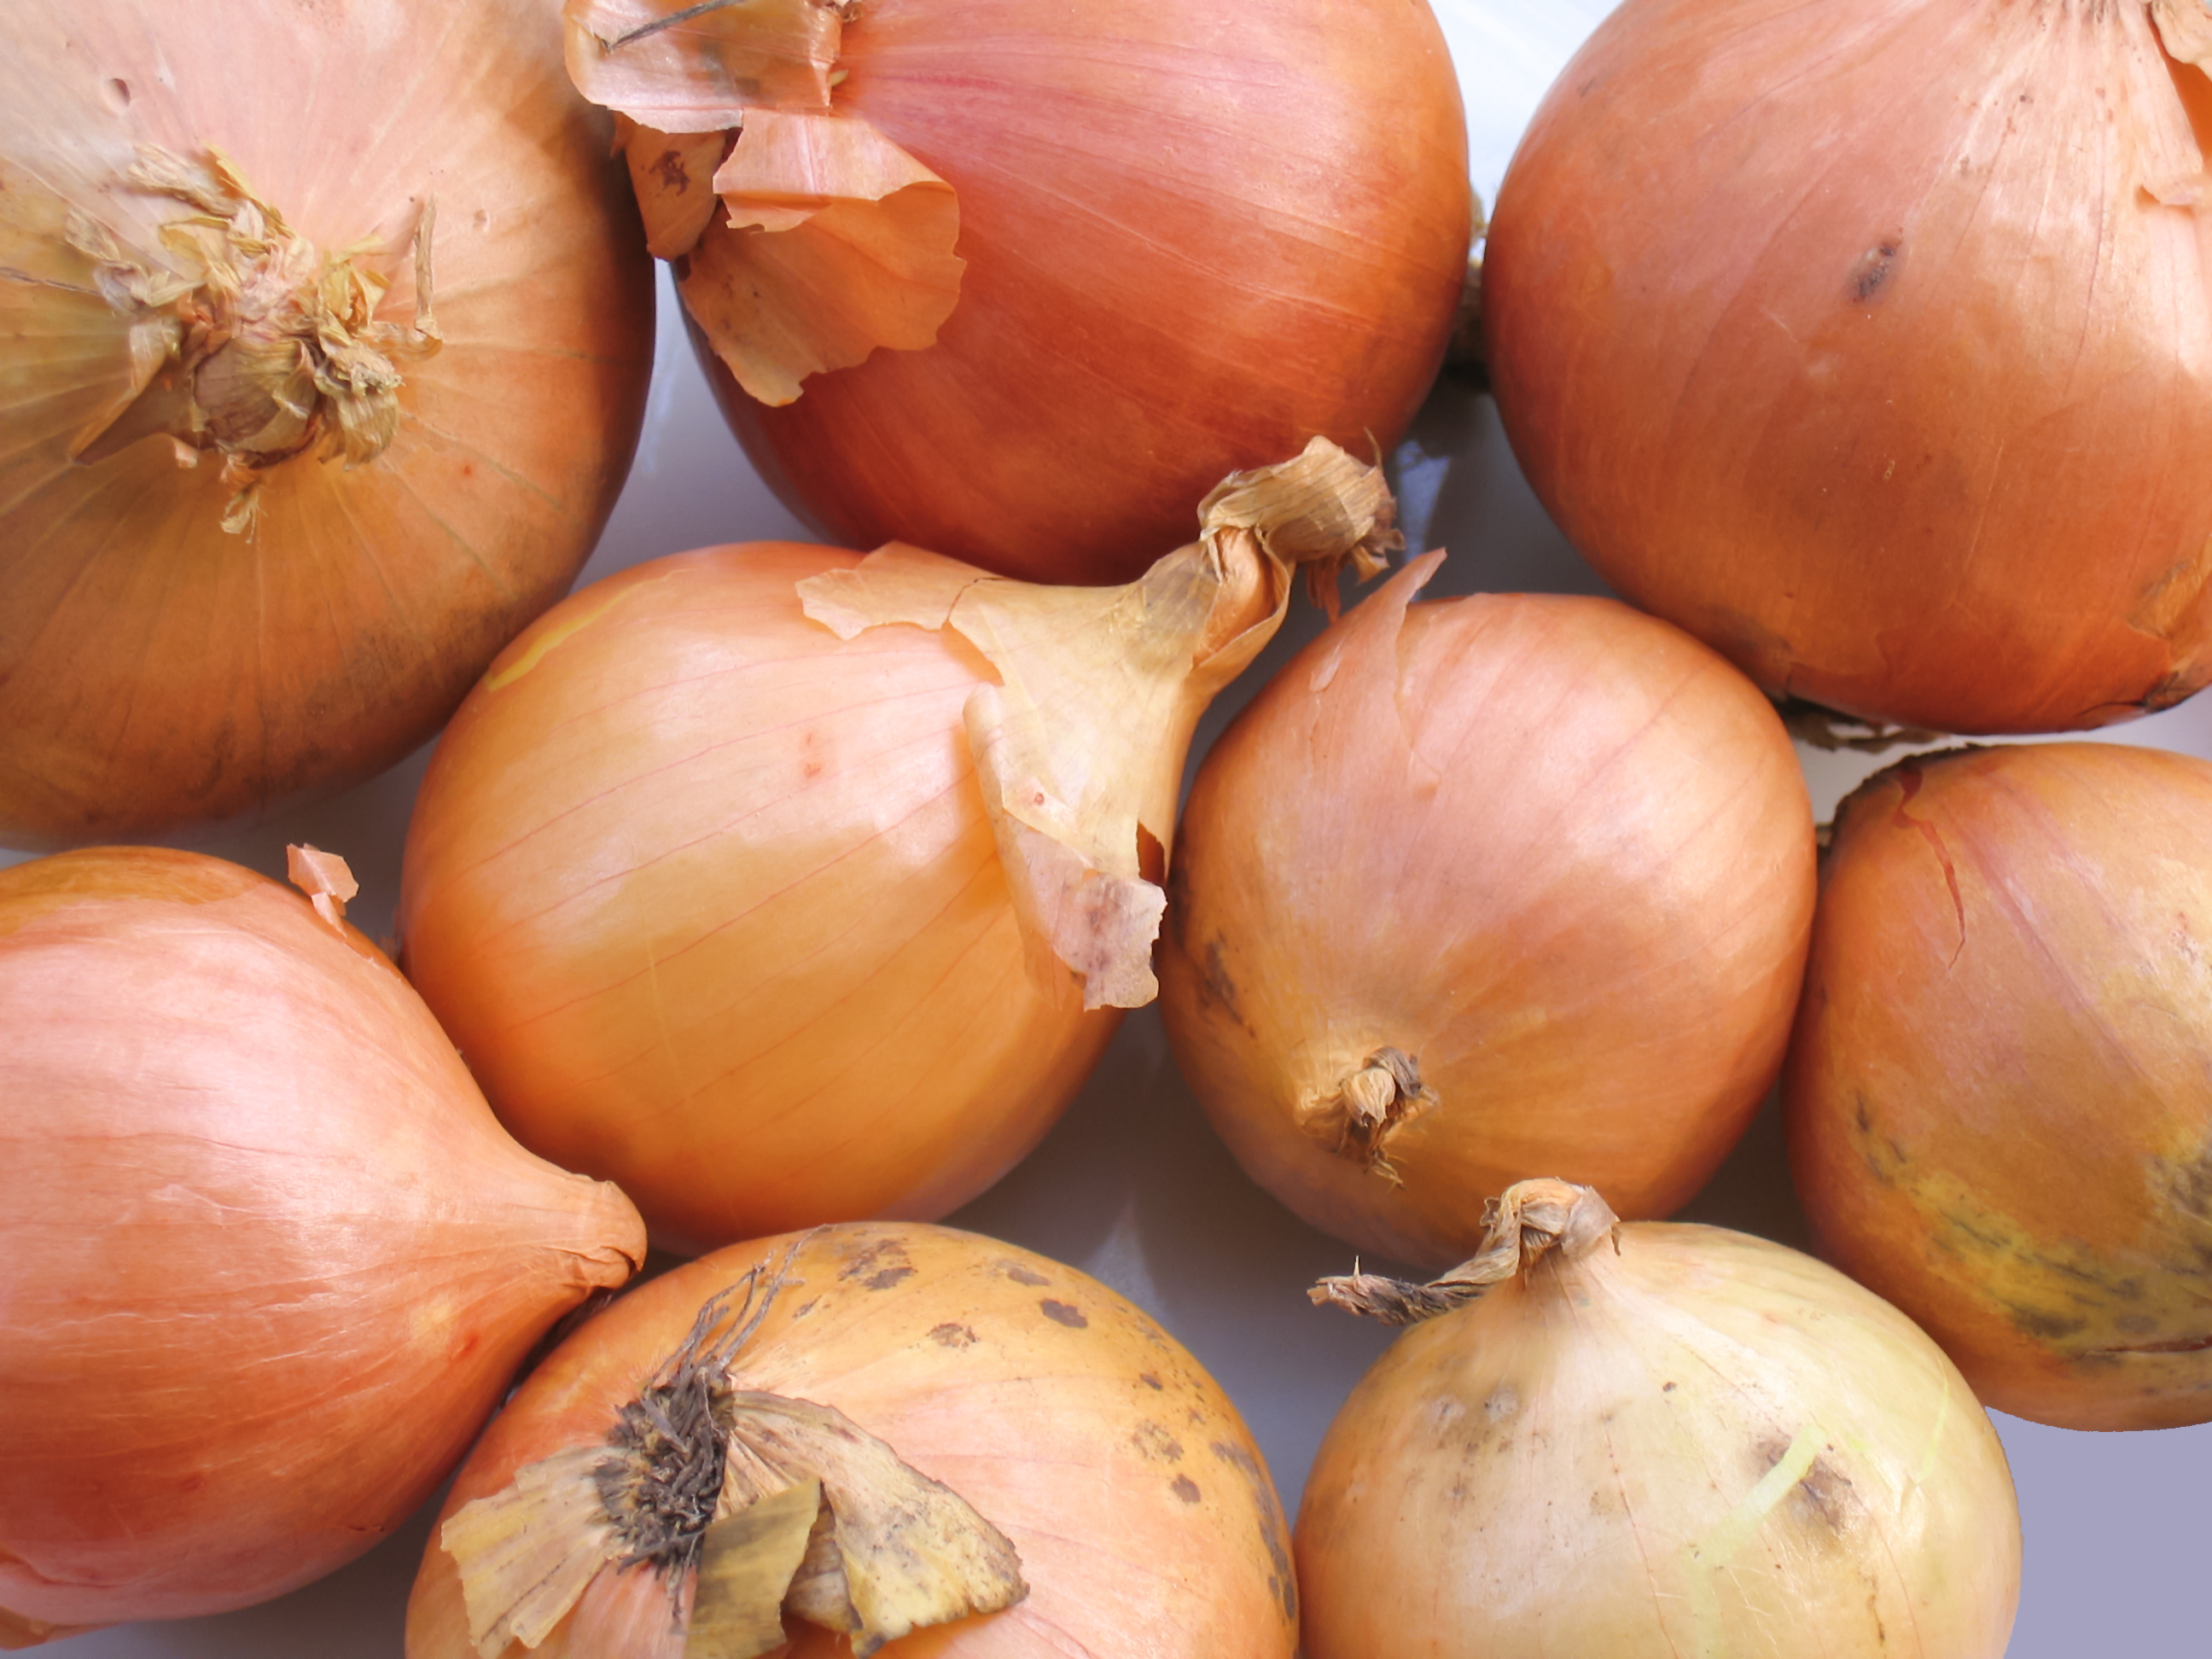 Interesting info on onions and the flu rootedforlife 39 s blog - Unknown uses for an onion ...